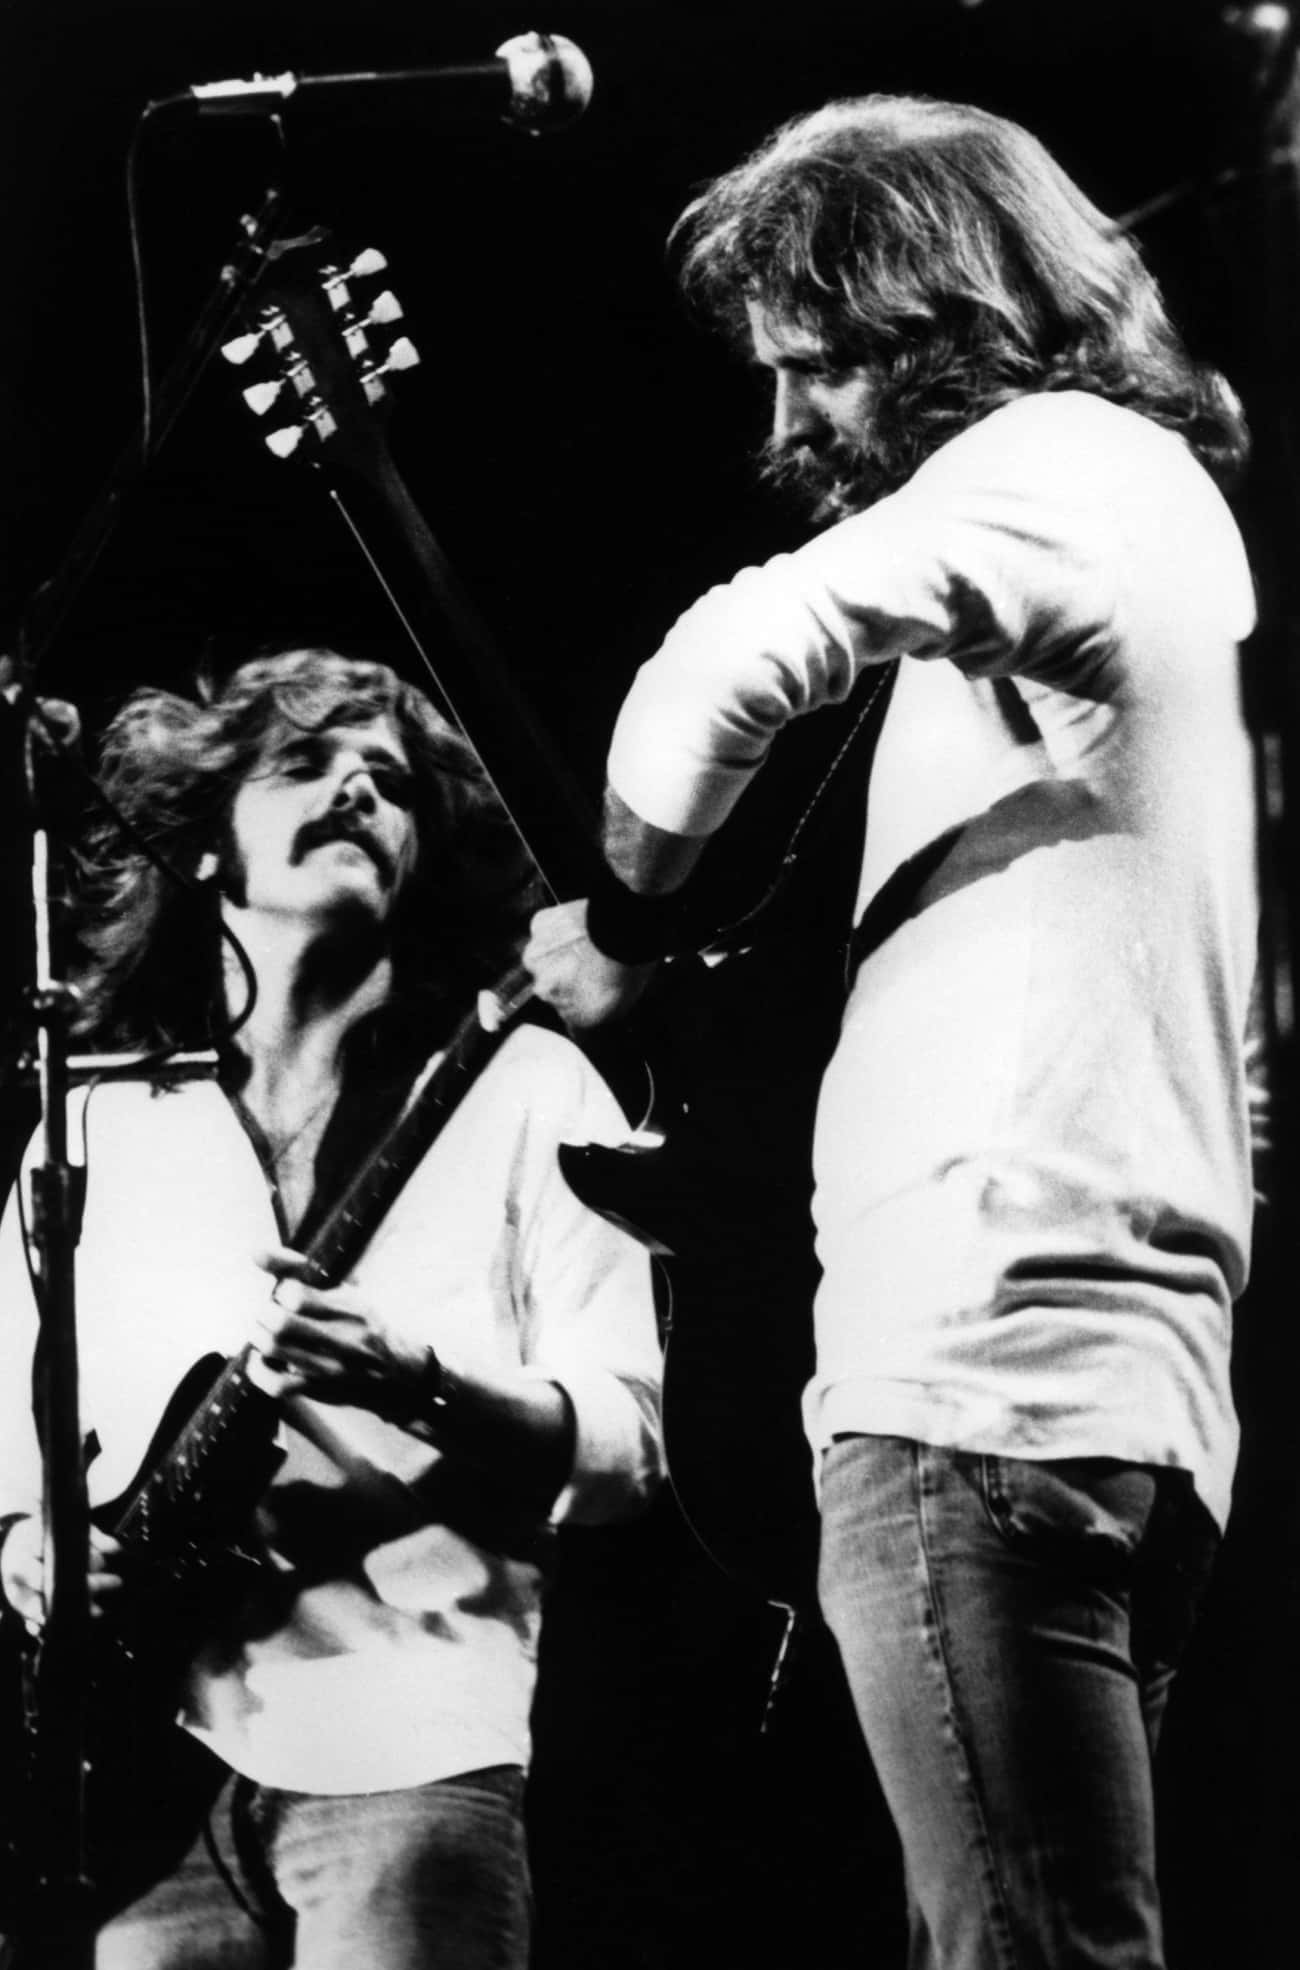 A Fight Between Glenn Frey And is listed (or ranked) 2 on the list The Eagles Sure Have A Lot Of Behind-The-Scenes Drama For A Band That Wants You To 'Take It Easy'